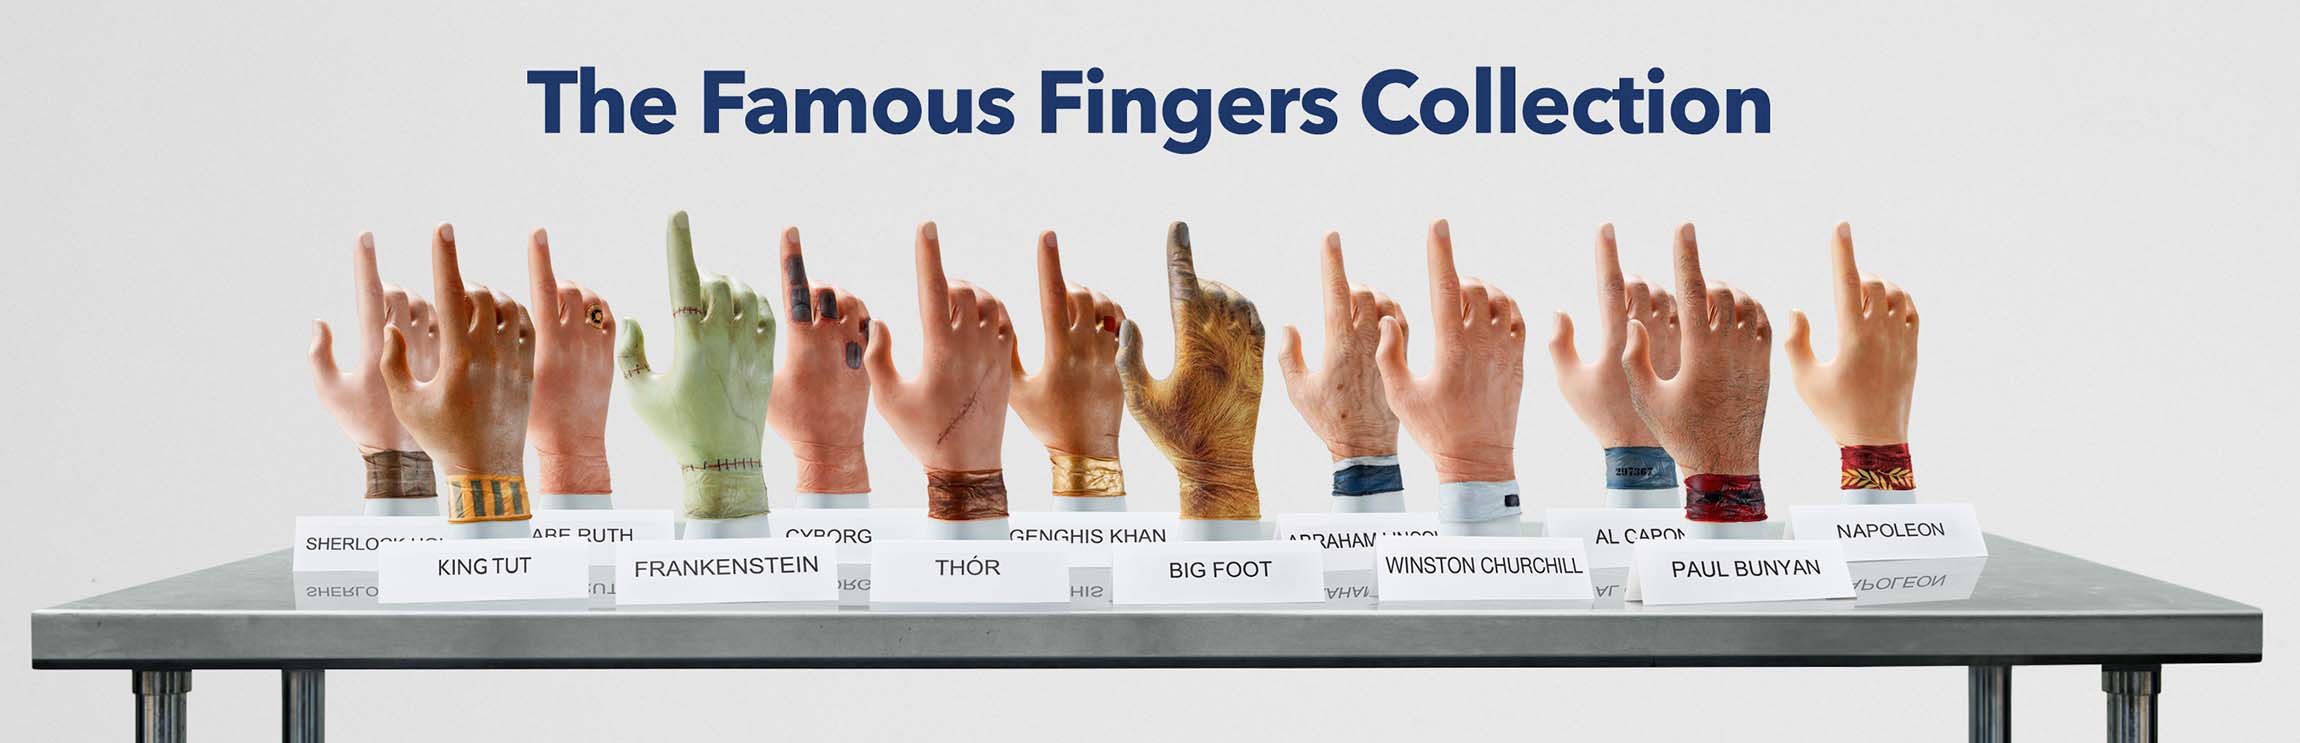 The Famous Fingers Collection